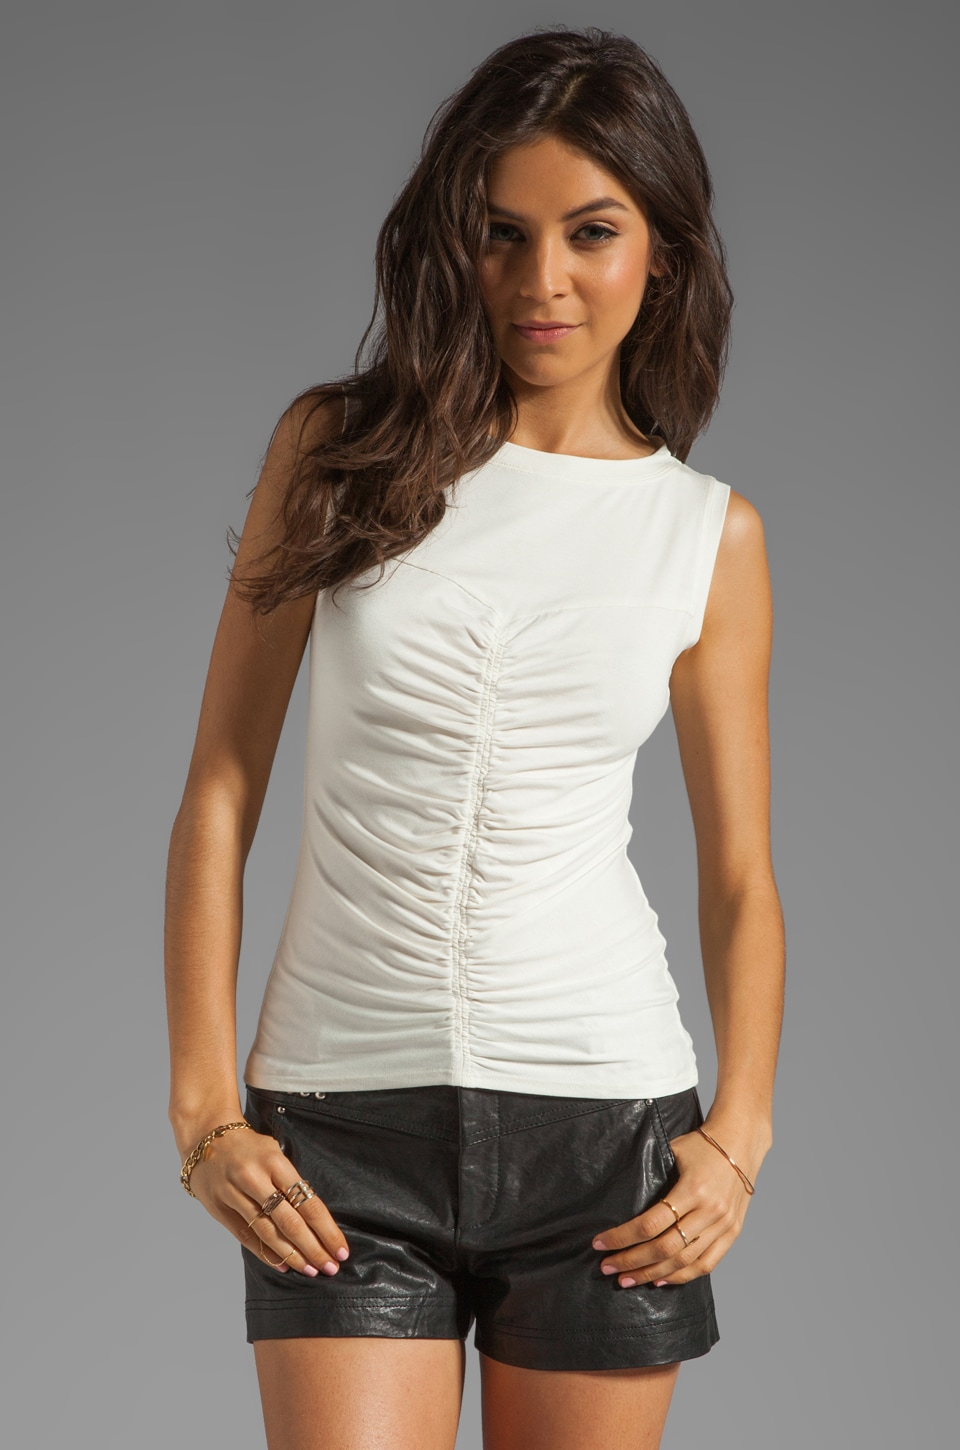 Nanette Lepore Arena Jersey Top in Ivory